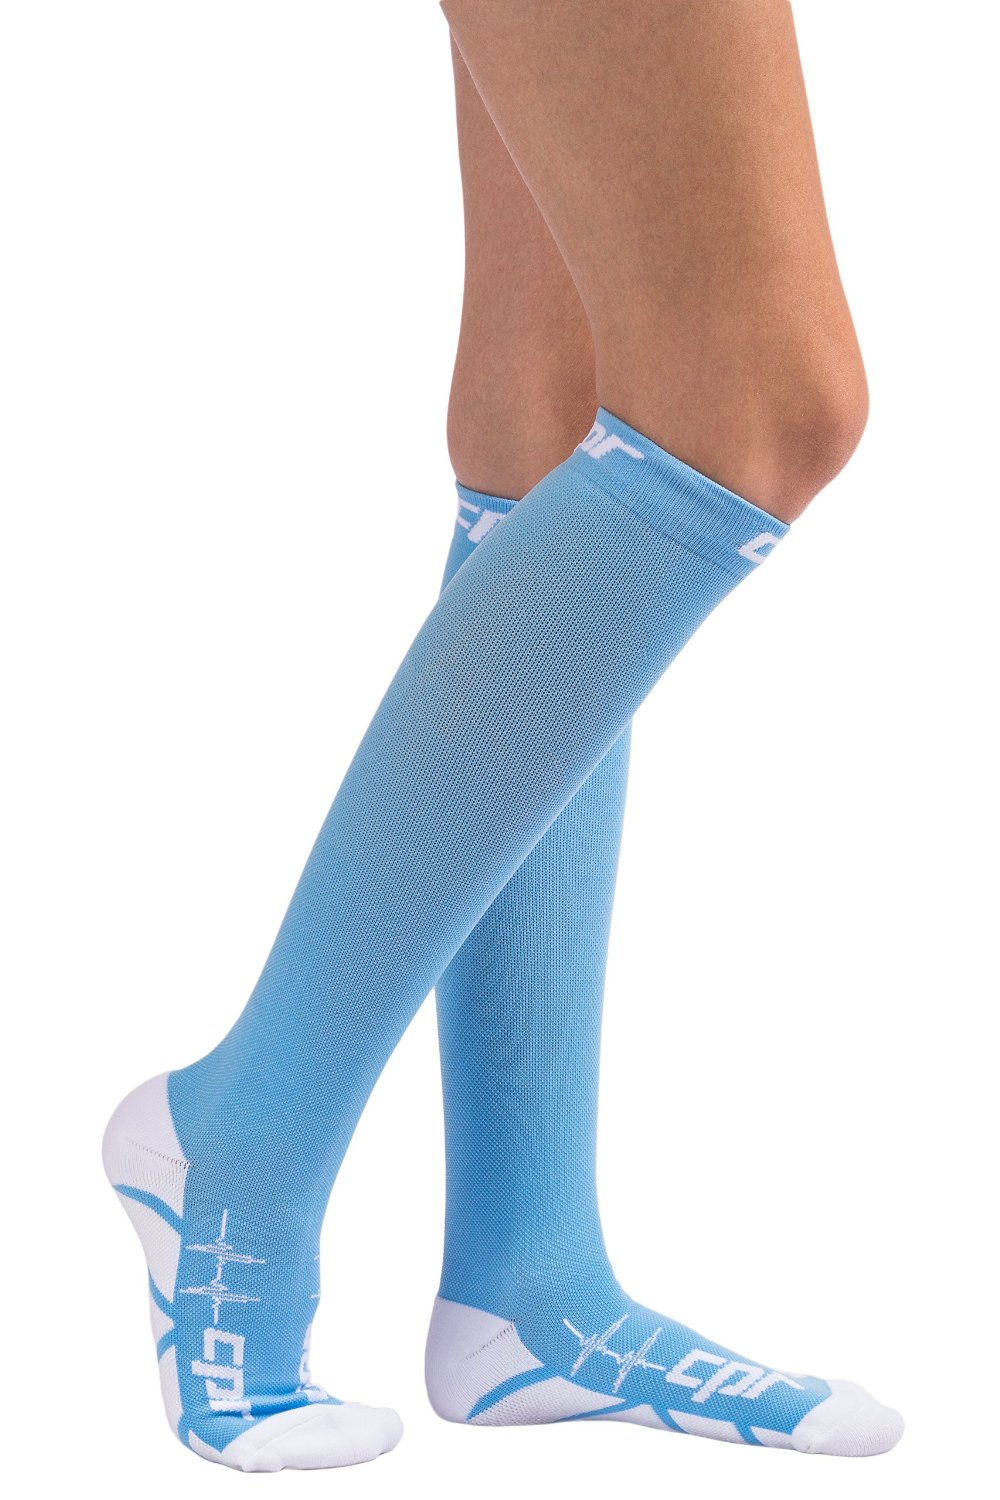 87923dc1c9 Get Quotations · CPR Compression Socks for Women and Men Nurses Compression  Socks Graduated Compression 20-30 MMHG